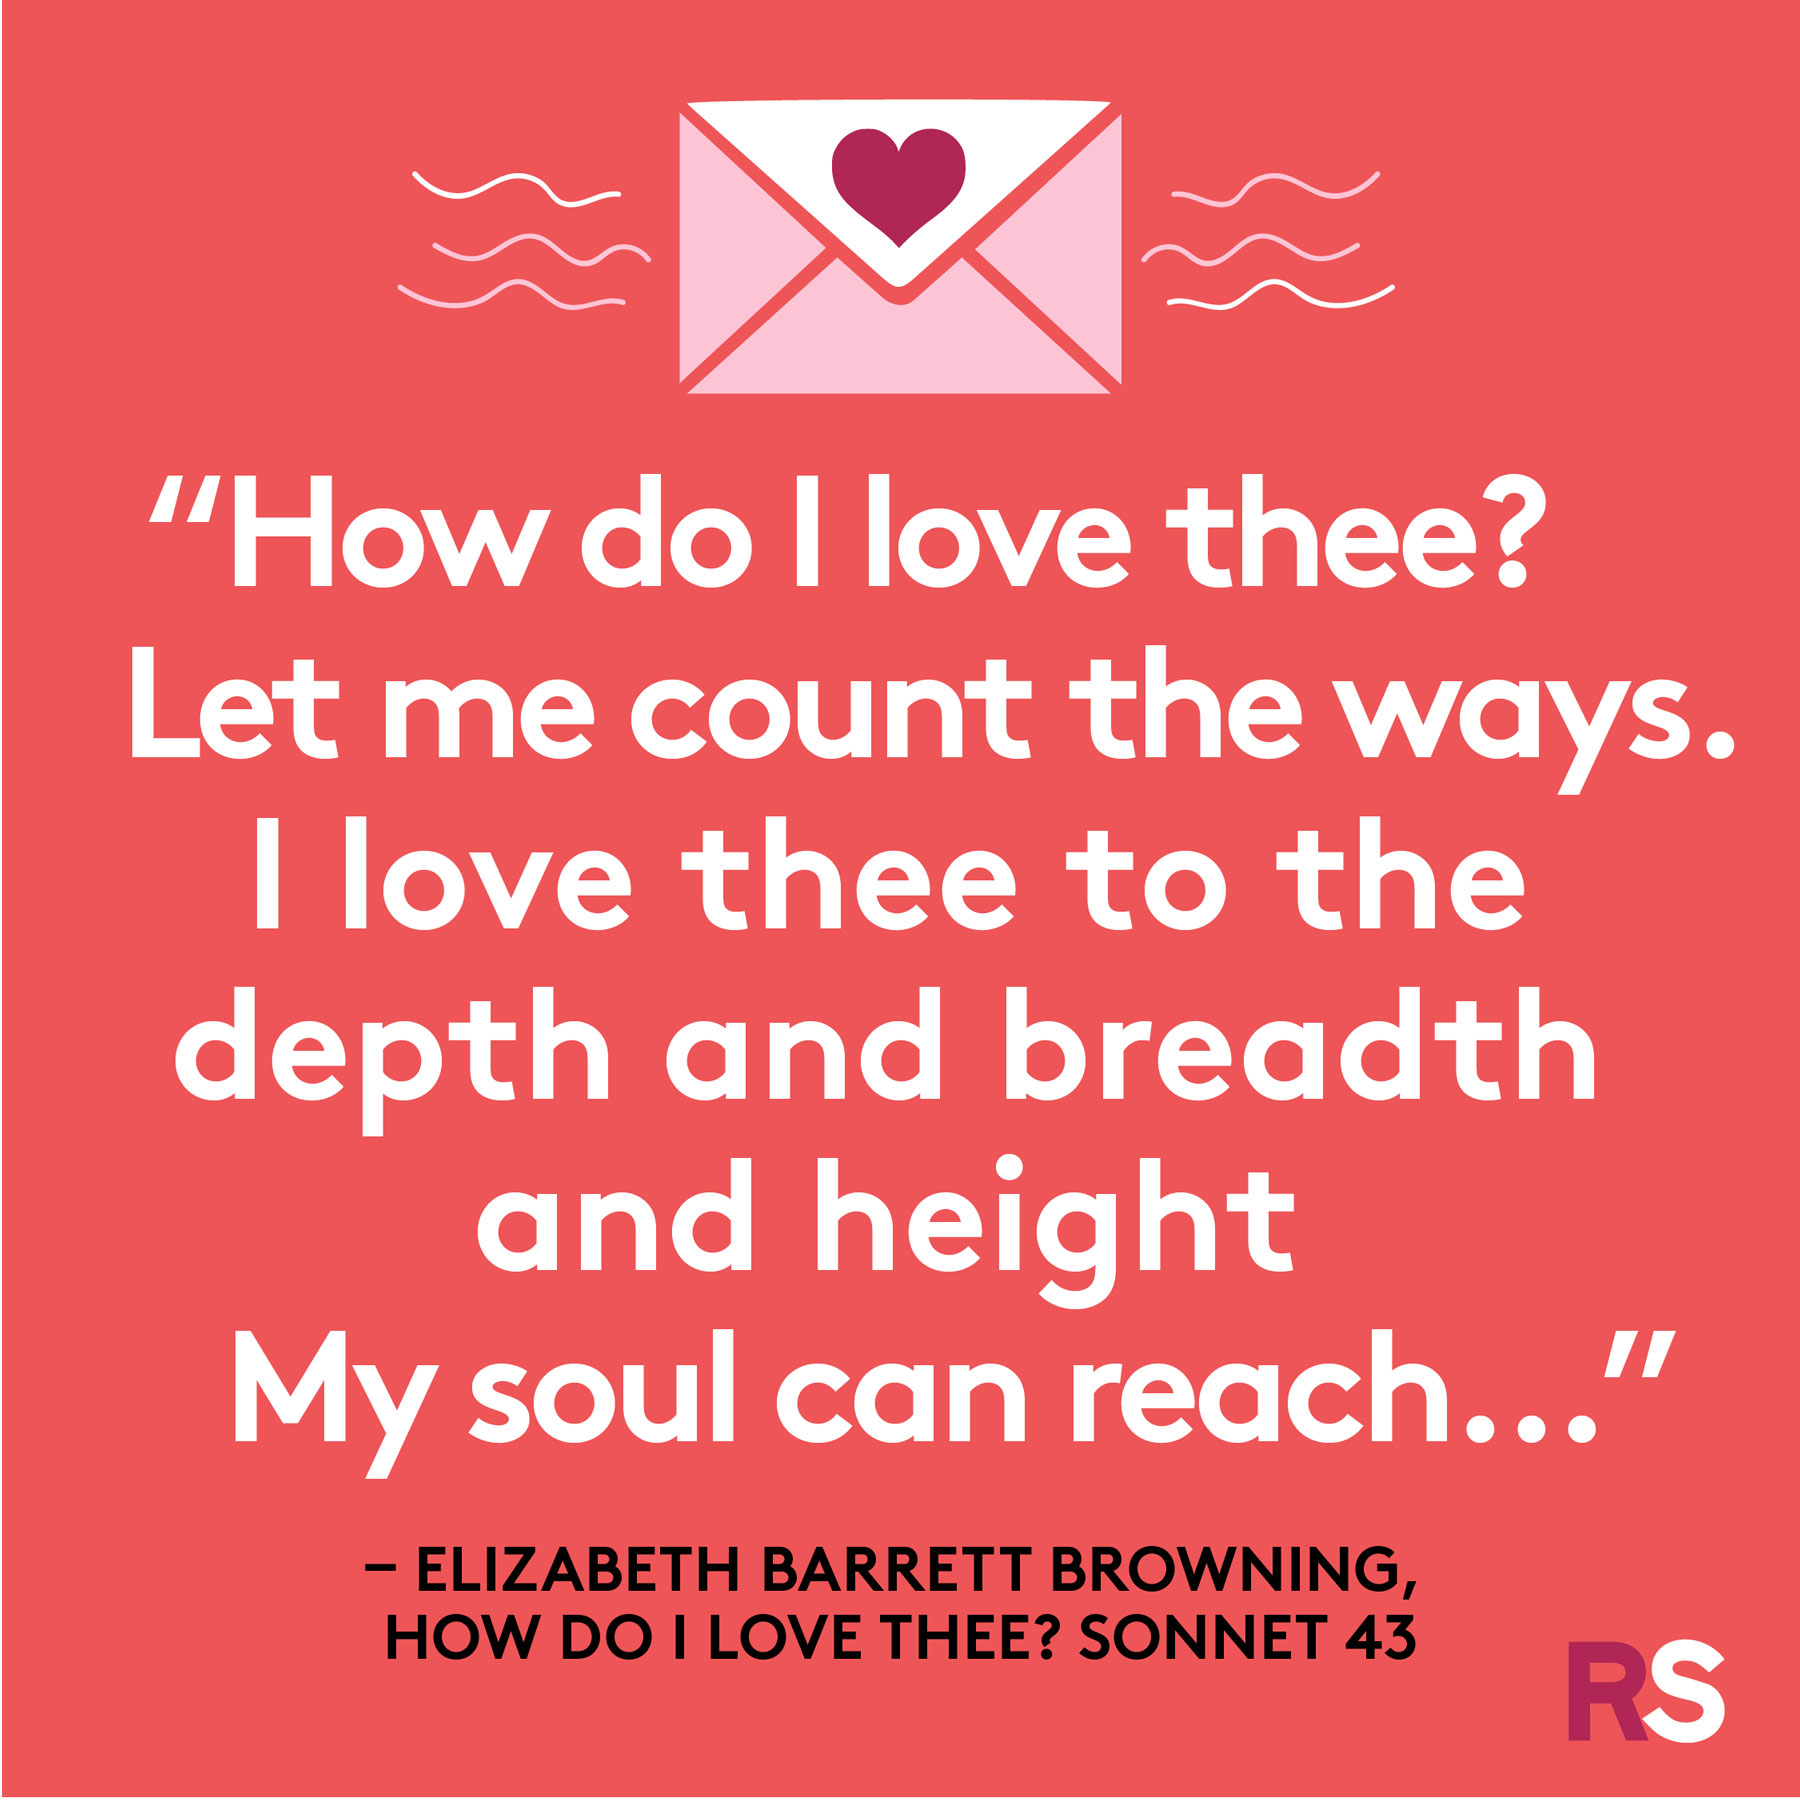 Love quotes, quotes about love - Elizabeth Barrett Browning, How do I love thee?